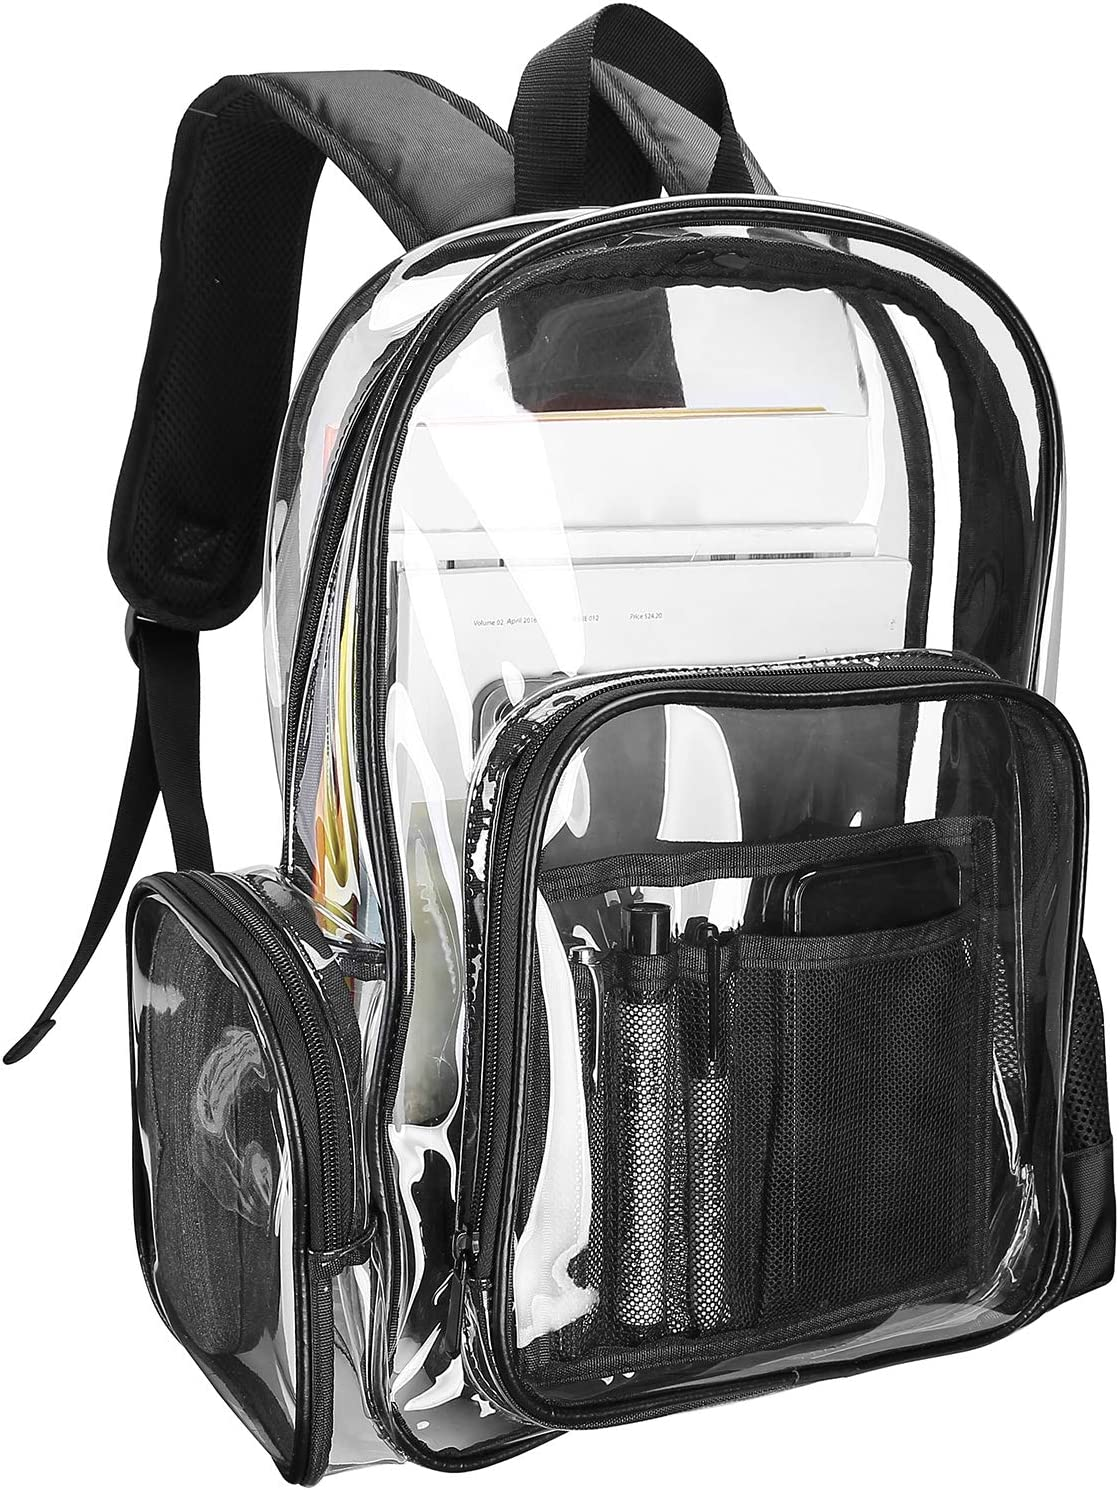 ProCase Heavy Duty Clear Backpack, See Through Backpacks Transparent Clear Large Bookbag for School Work Stadium Security Travel Sporting Events -Clear